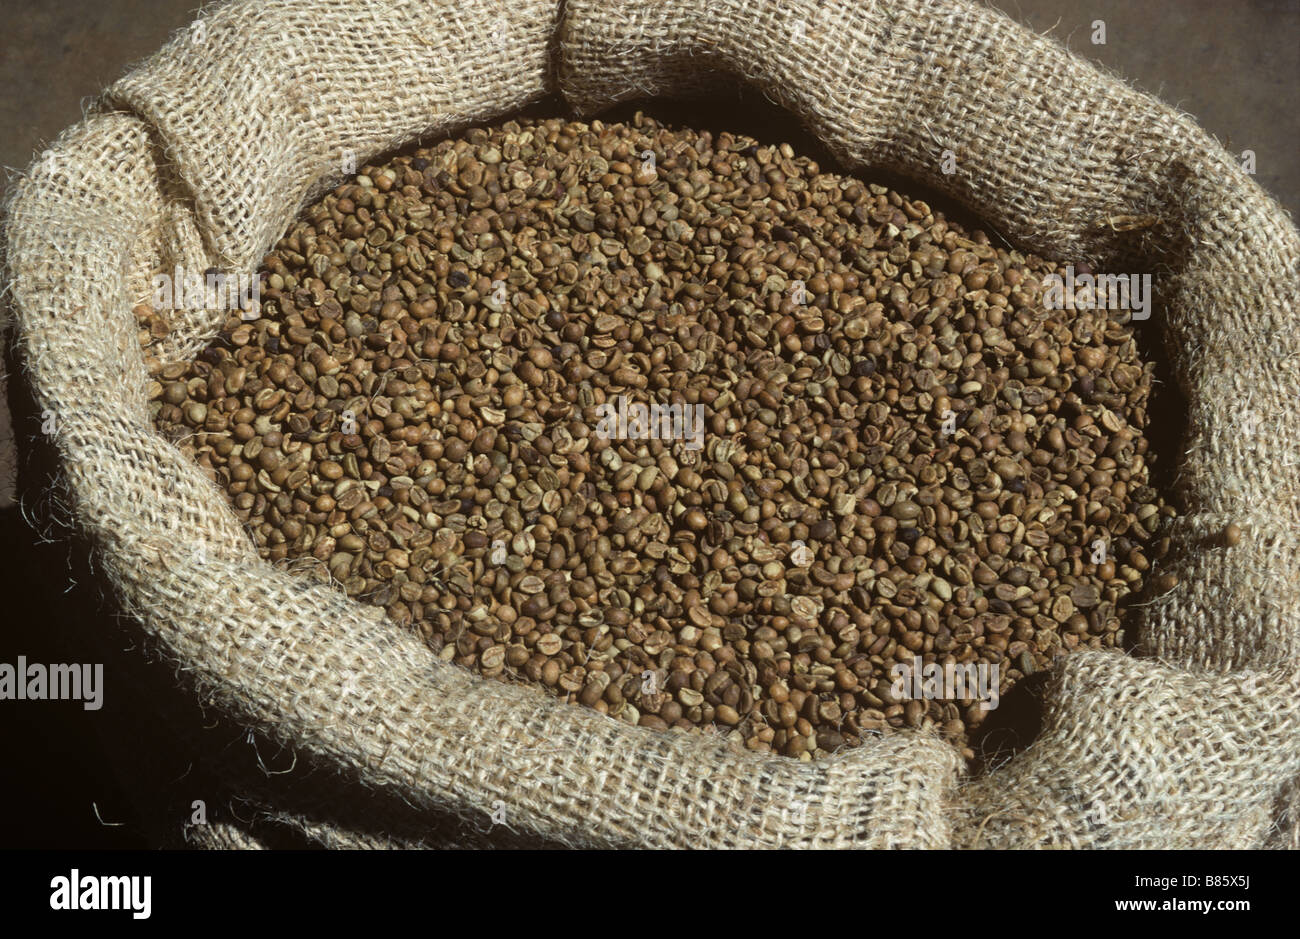 Dried fermented coffee beans in a sack ready for export Arusha Tanzania - Stock Image